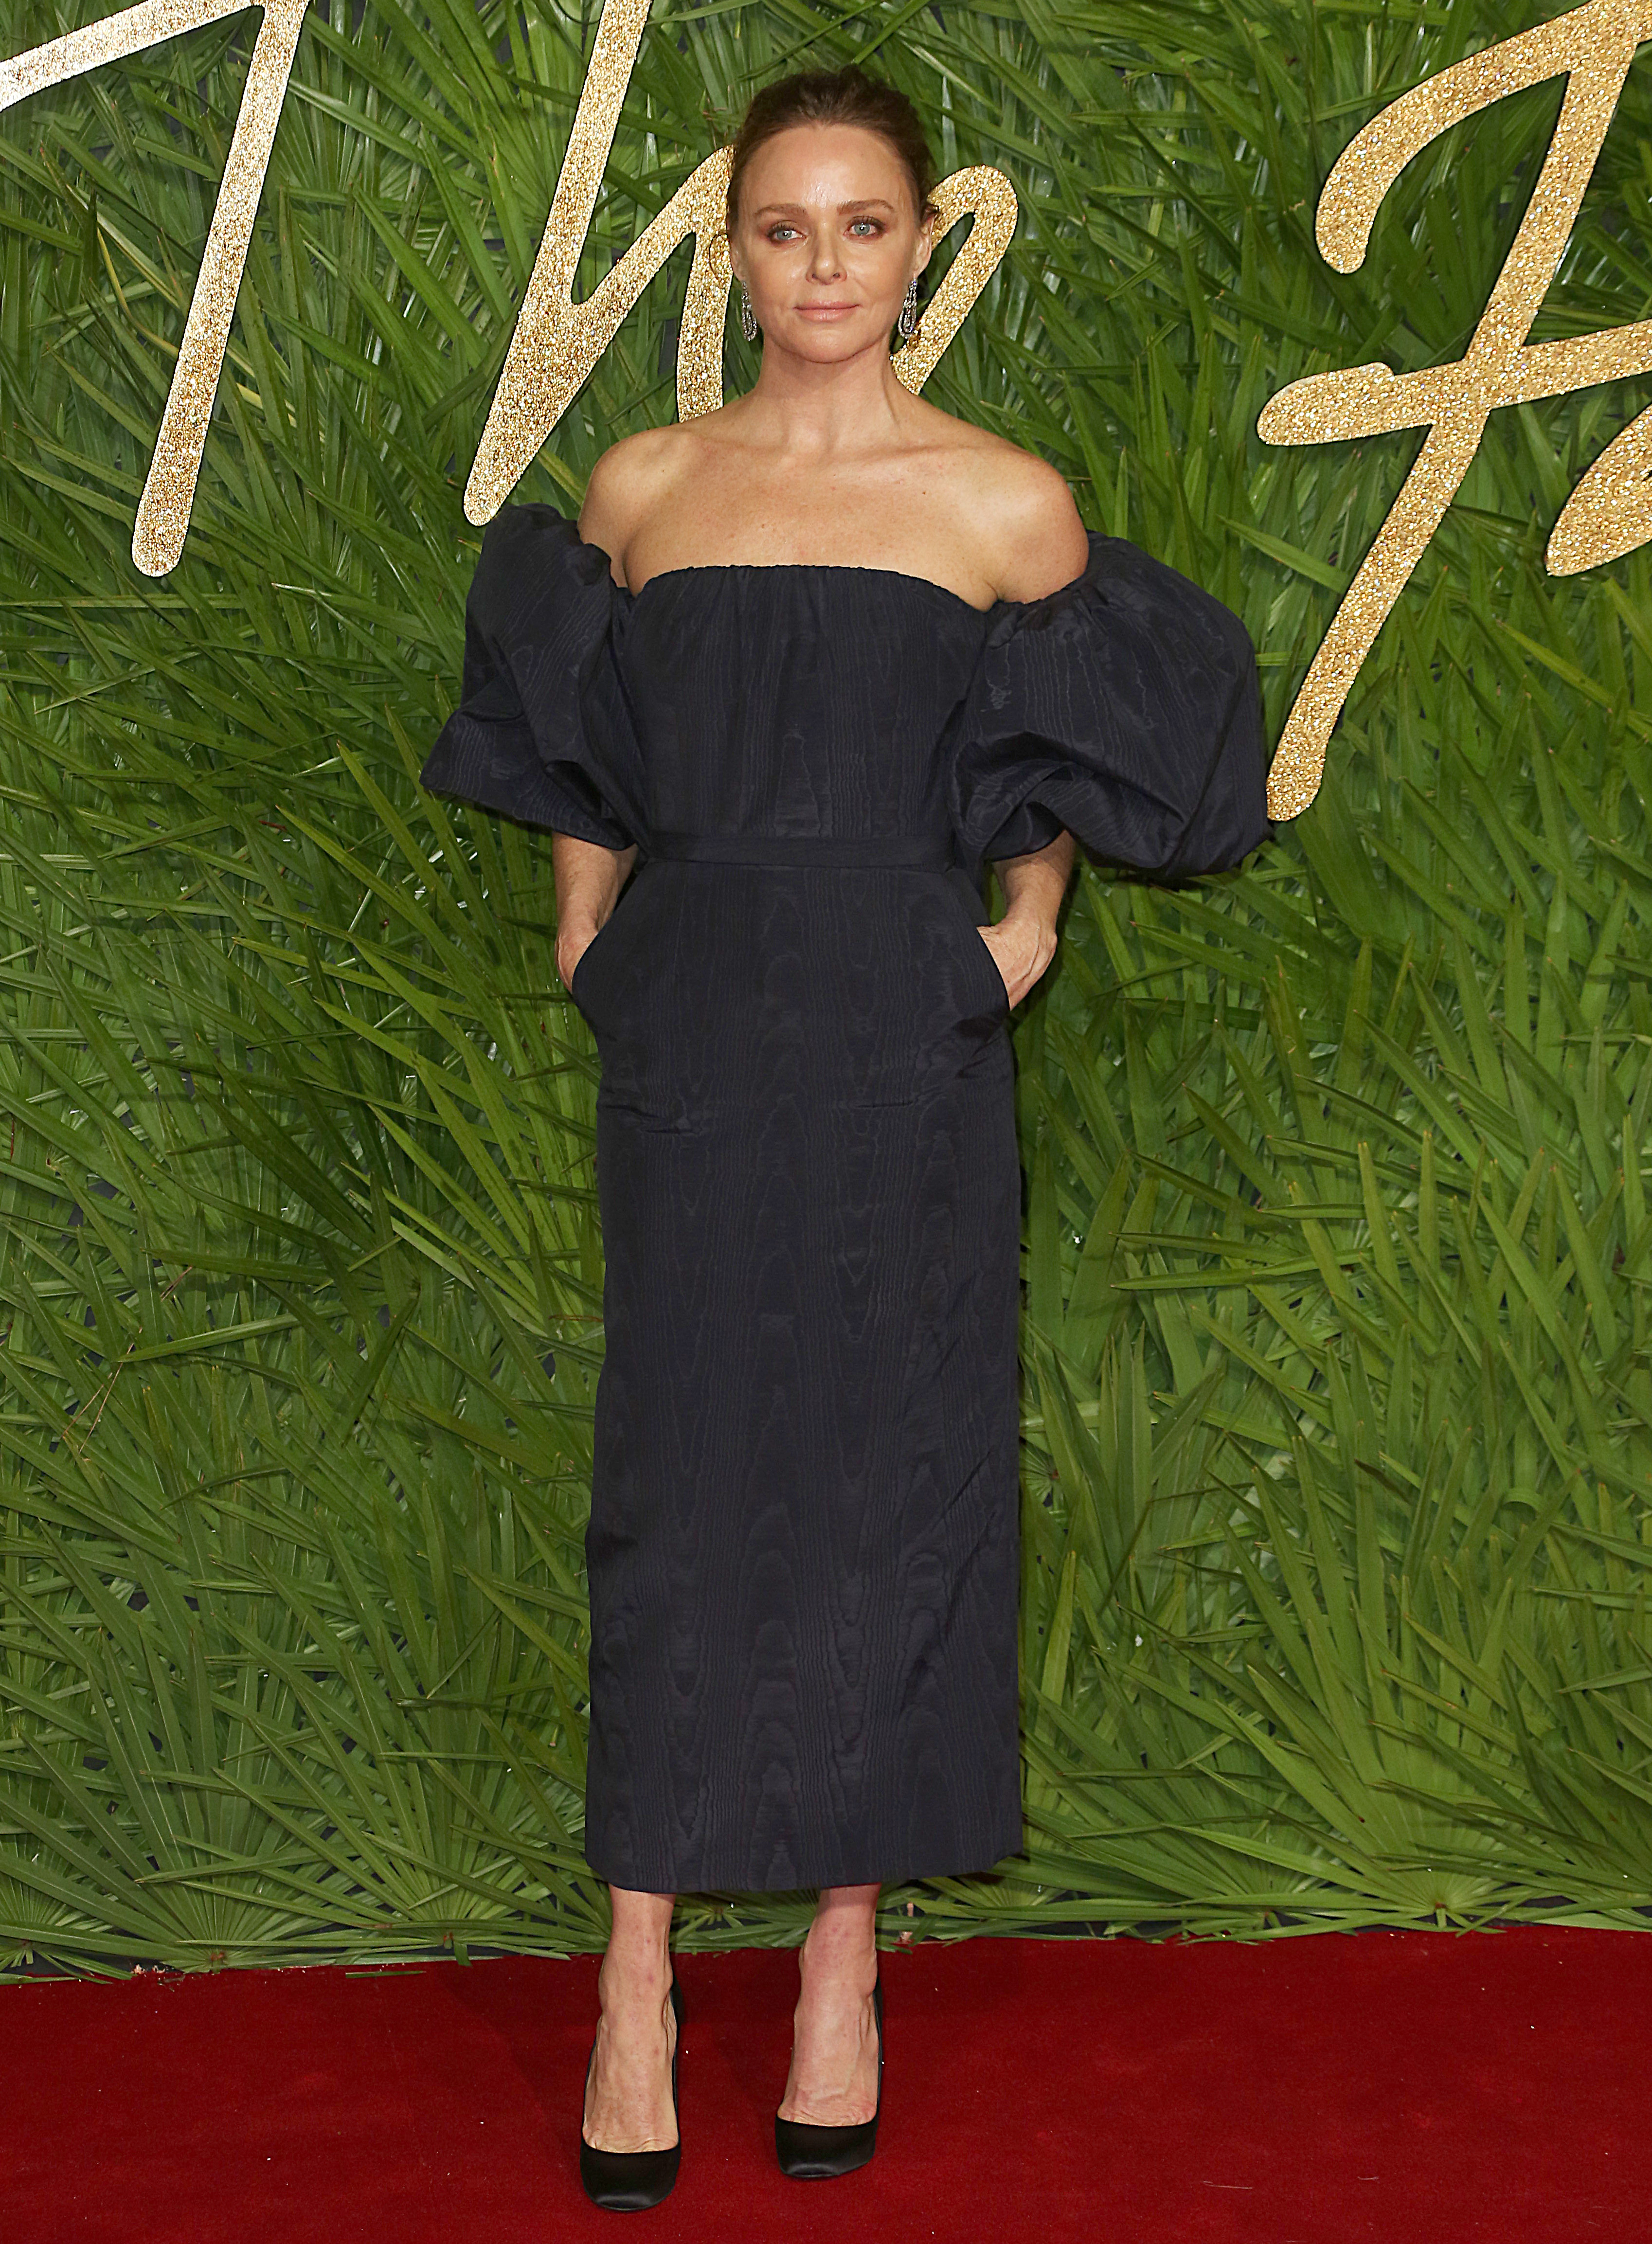 The Fashion Awards 2017, Royal Albert Hall, London UK, 04 December 2017, Photo by Brett D. Cove <P> Pictured: Stella McCartney <B>Ref: SPL1632930  051217  </B><BR/> Picture by: Brett D. Cove / Splash News<BR/> </P><P> <B>Splash News and Pictures</B><BR/> Los Angeles:310-821-2666<BR/> New York:212-619-2666<BR/> London:870-934-2666<BR/> <span id=